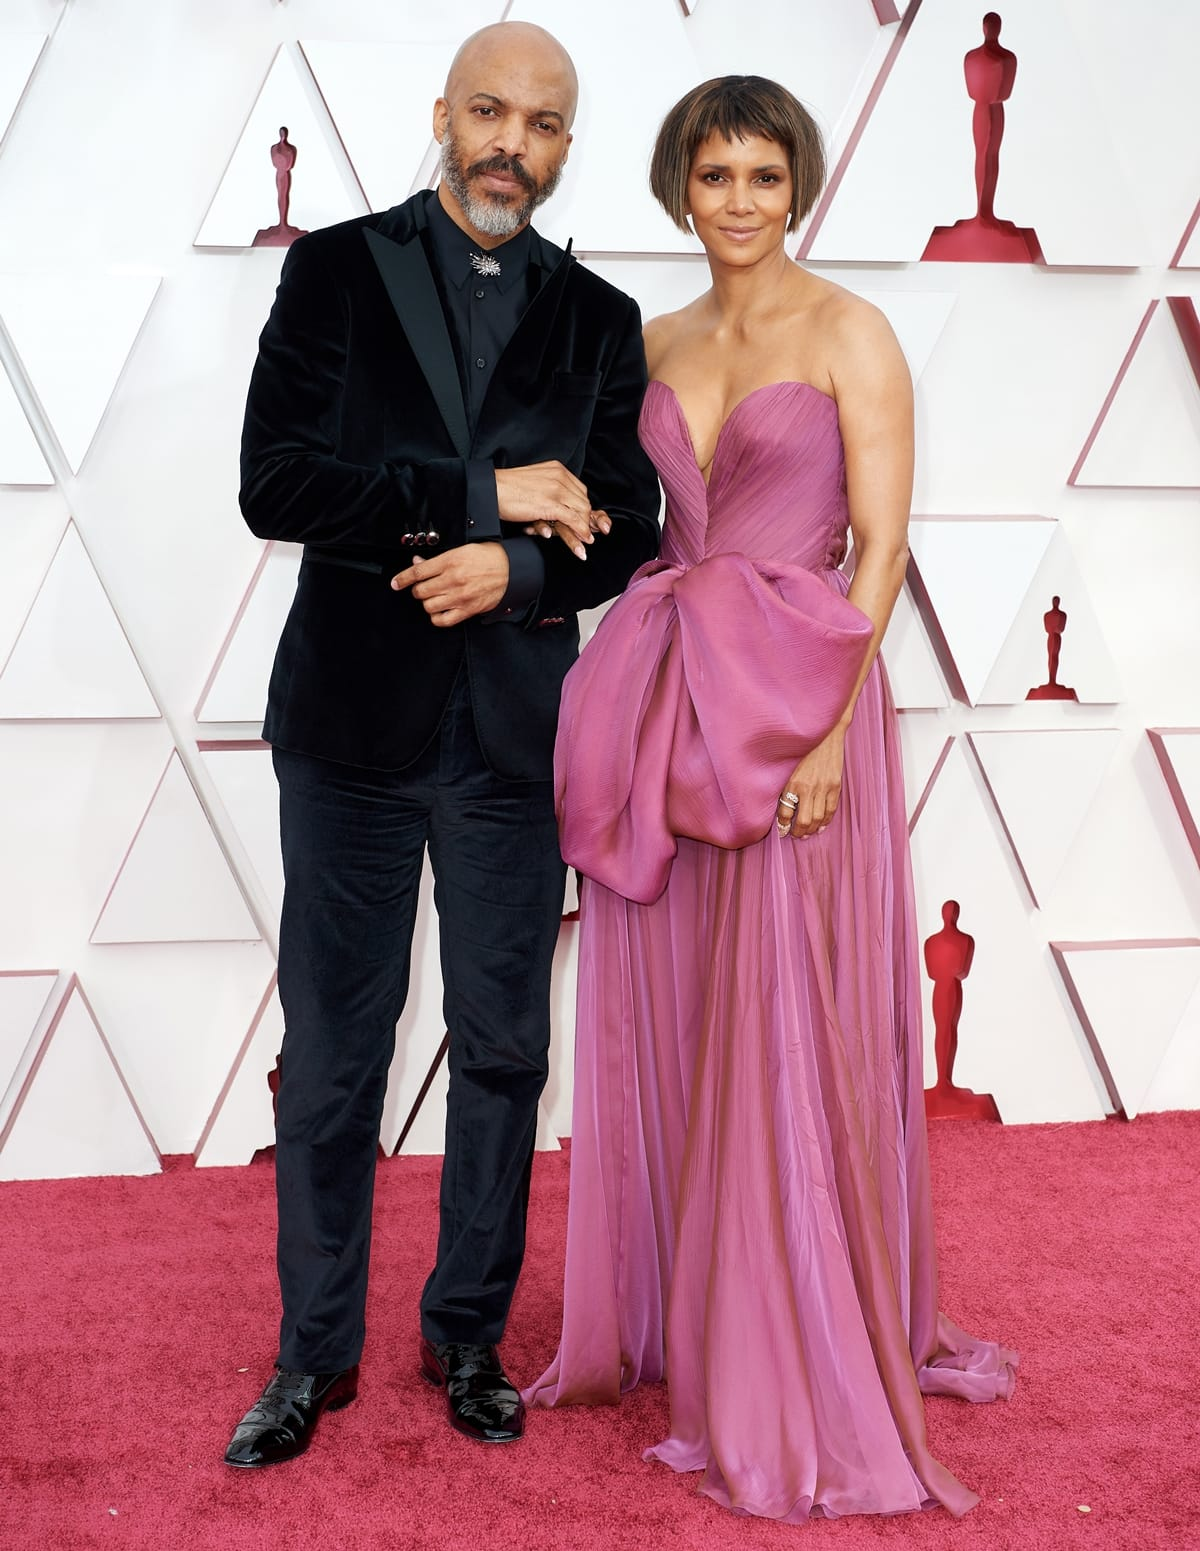 Van Hunt and his girlfriend Halle Berry attend the 93rd Annual Academy Awards